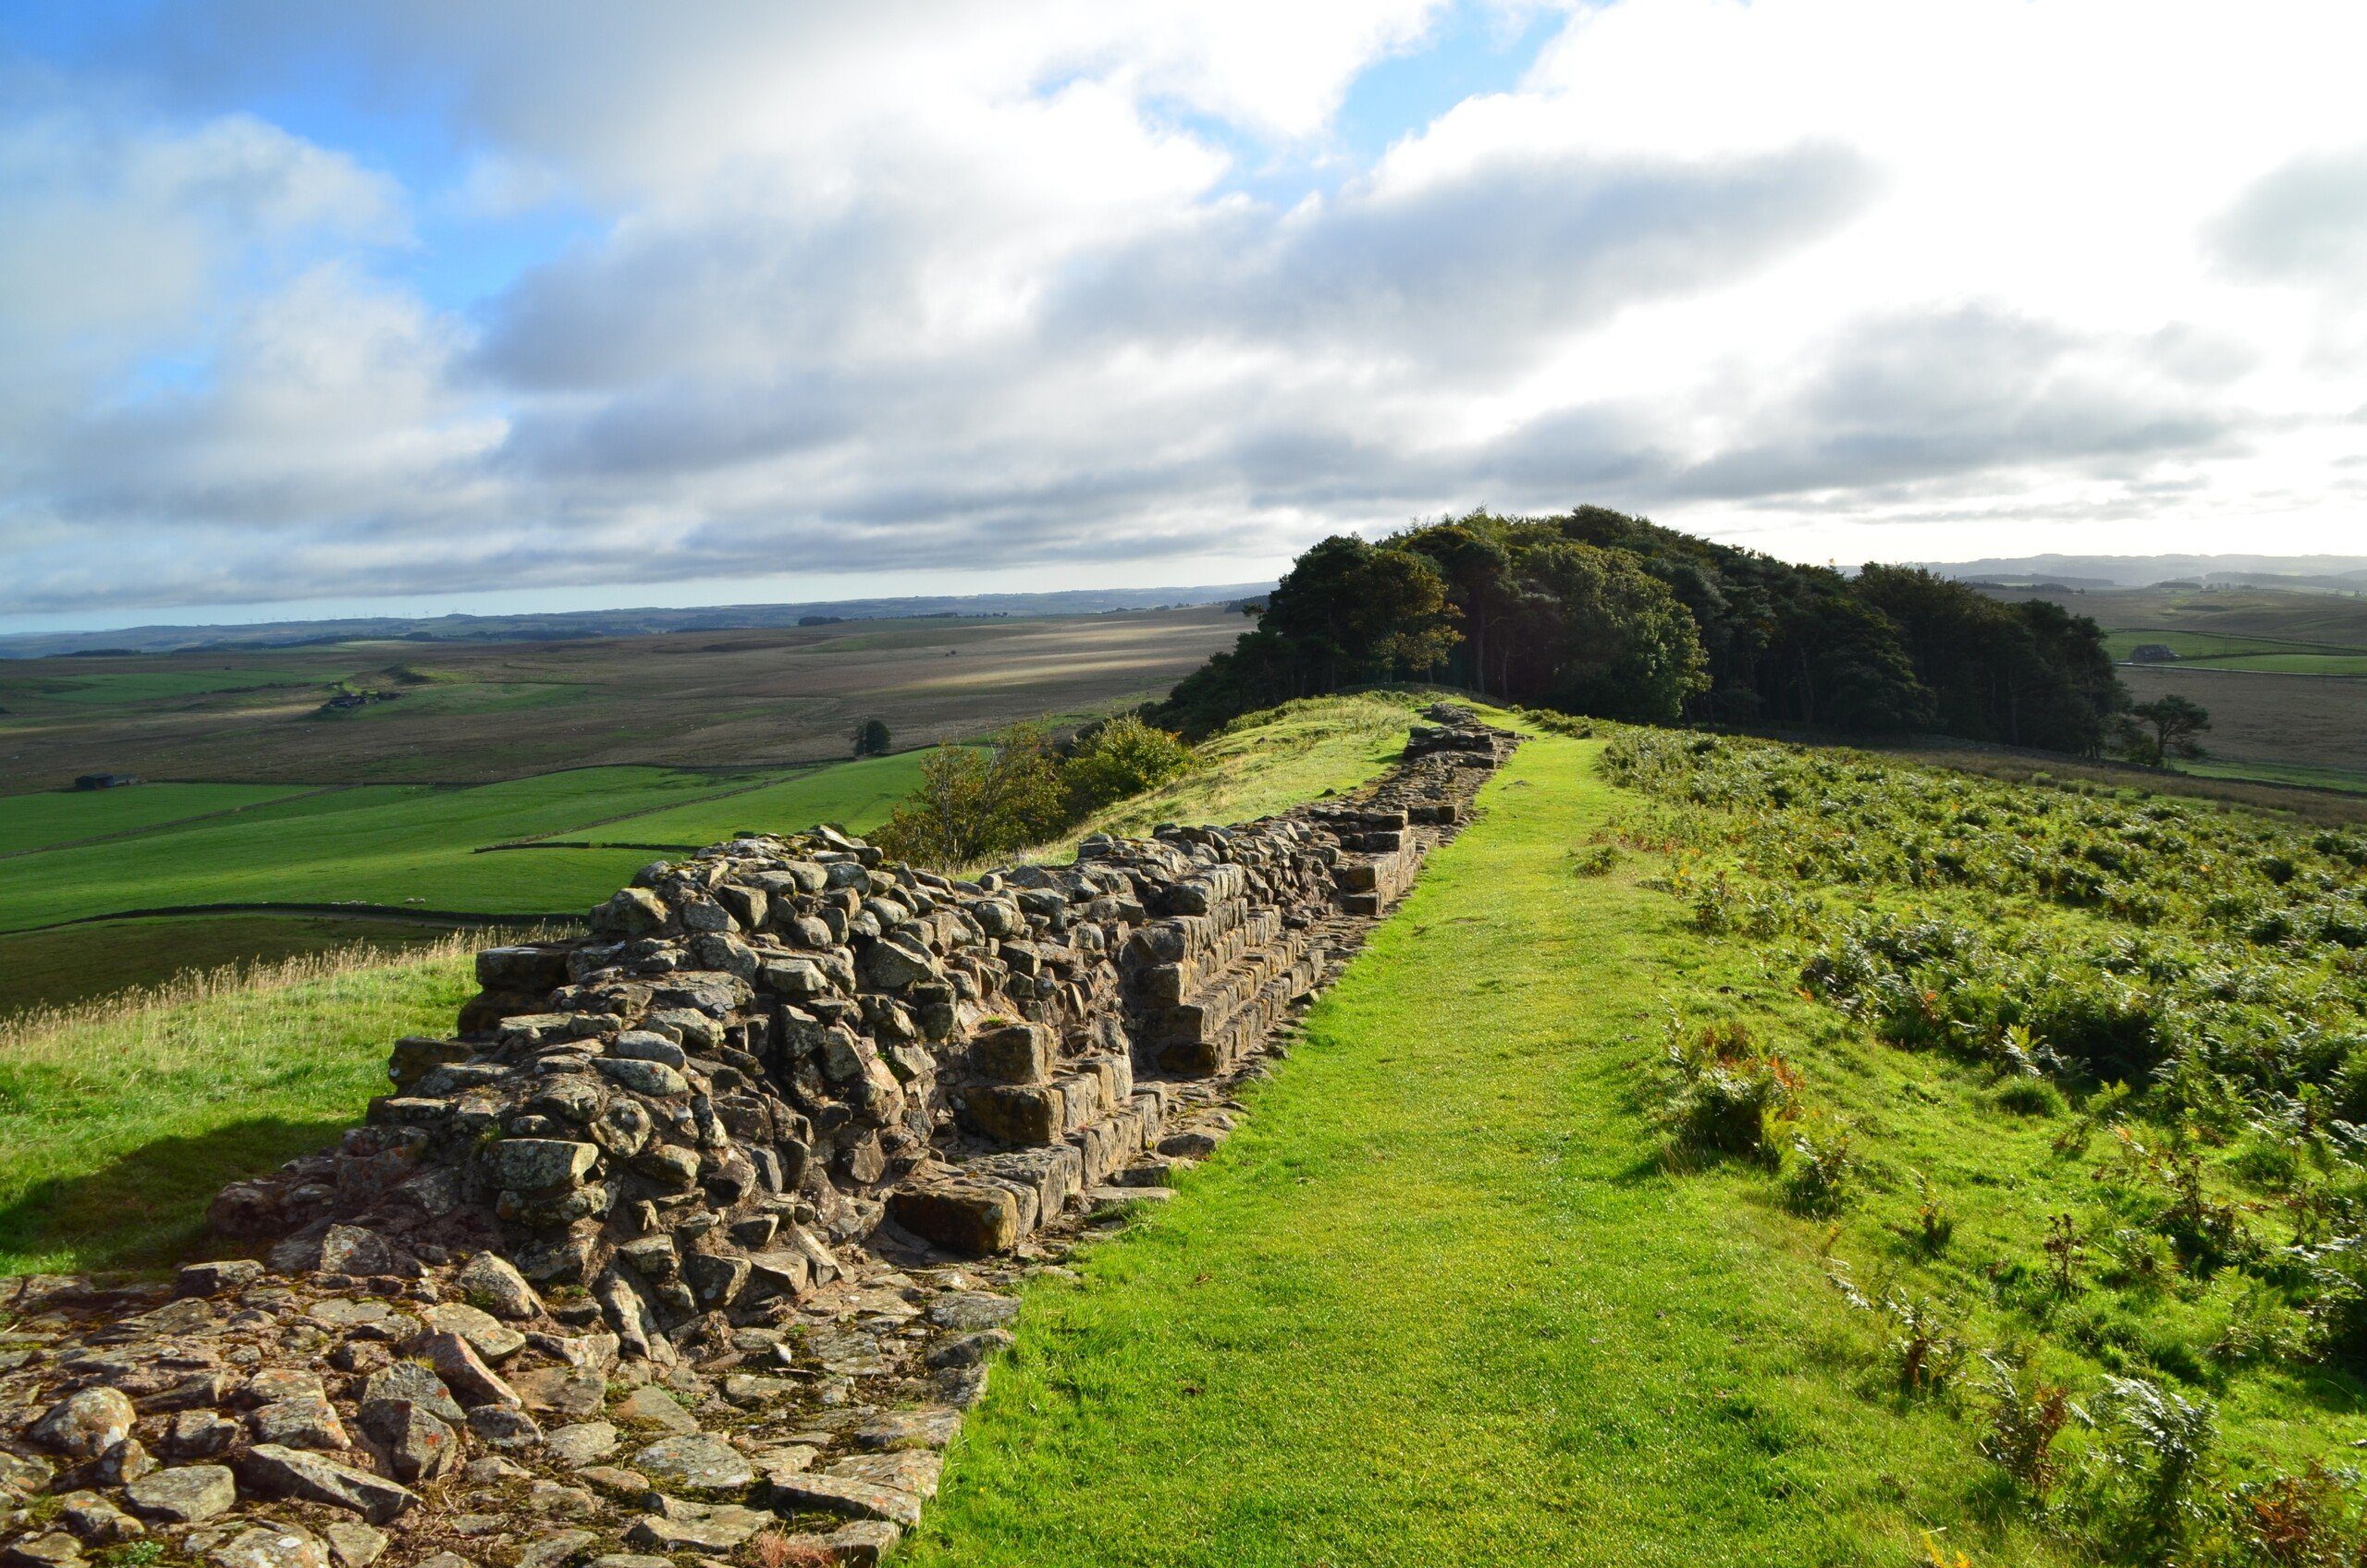 Great section of Roman Wall at Sewingshields, heading towards small patch of woodland, on the Hadrian's Wall Path